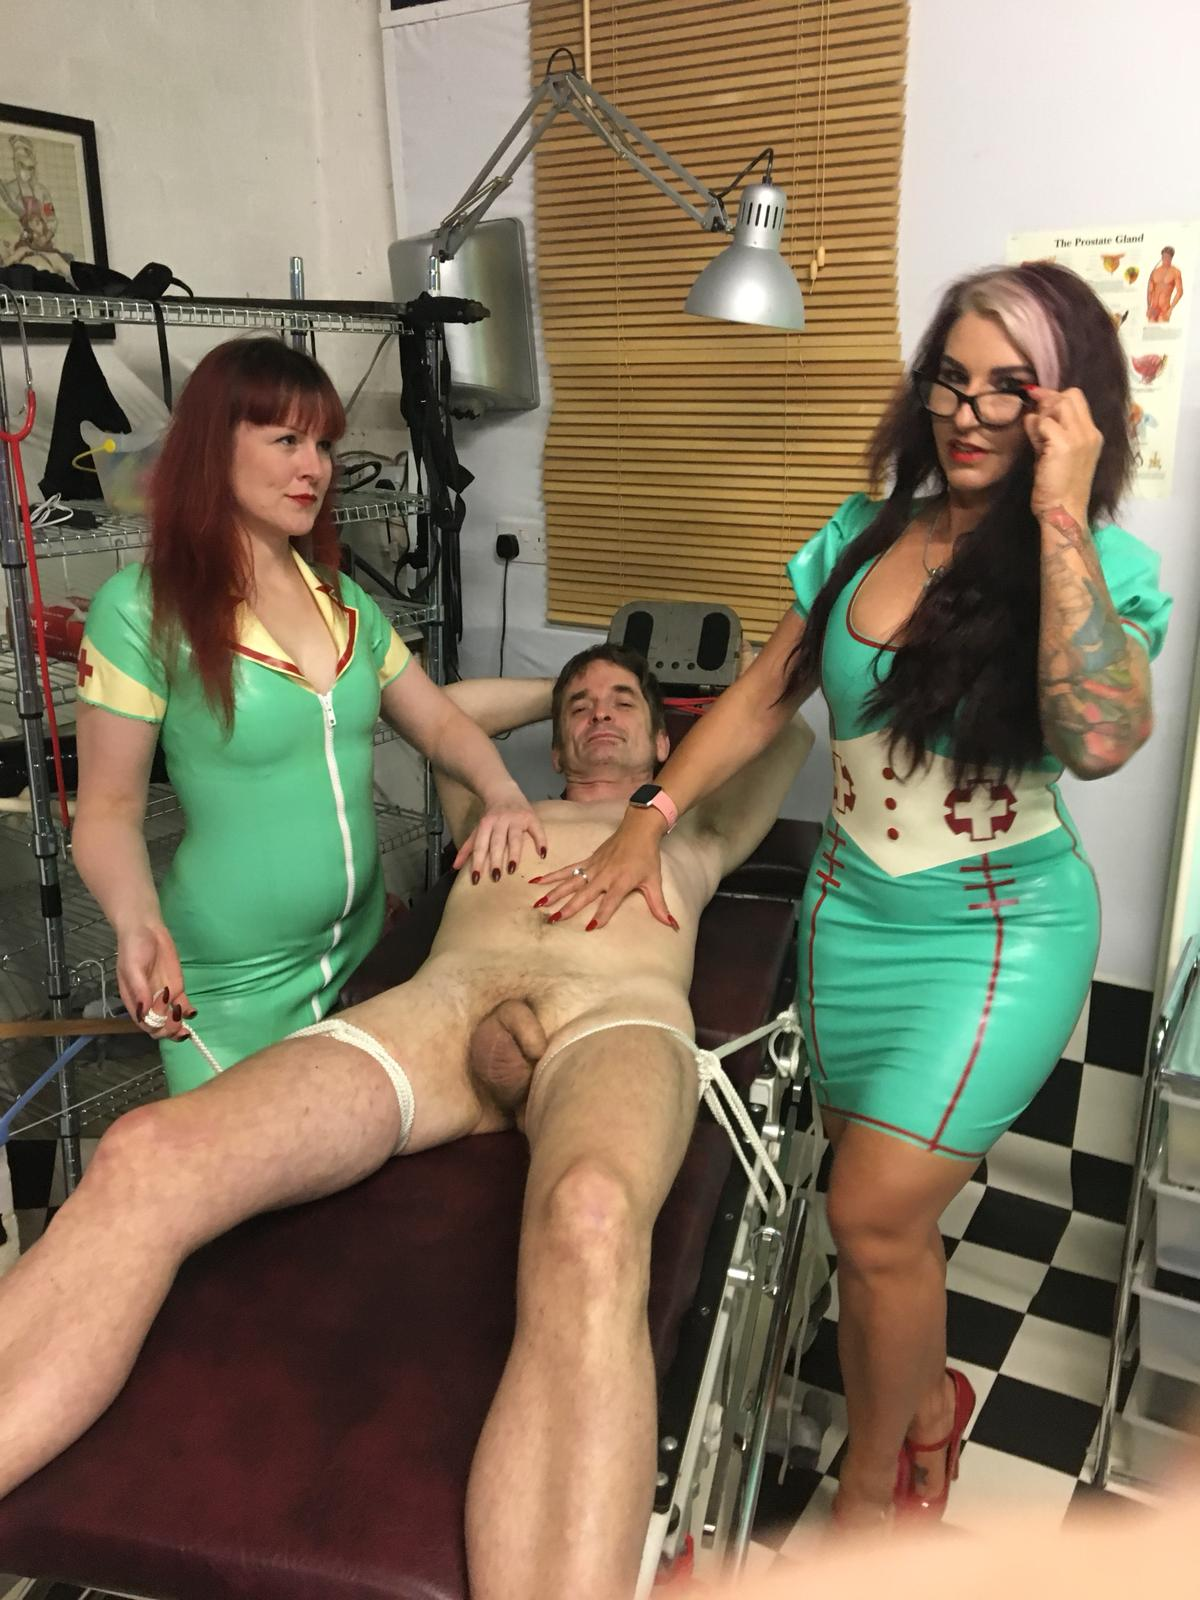 Miss Kitty Bliss and Myself with a Filming slave.